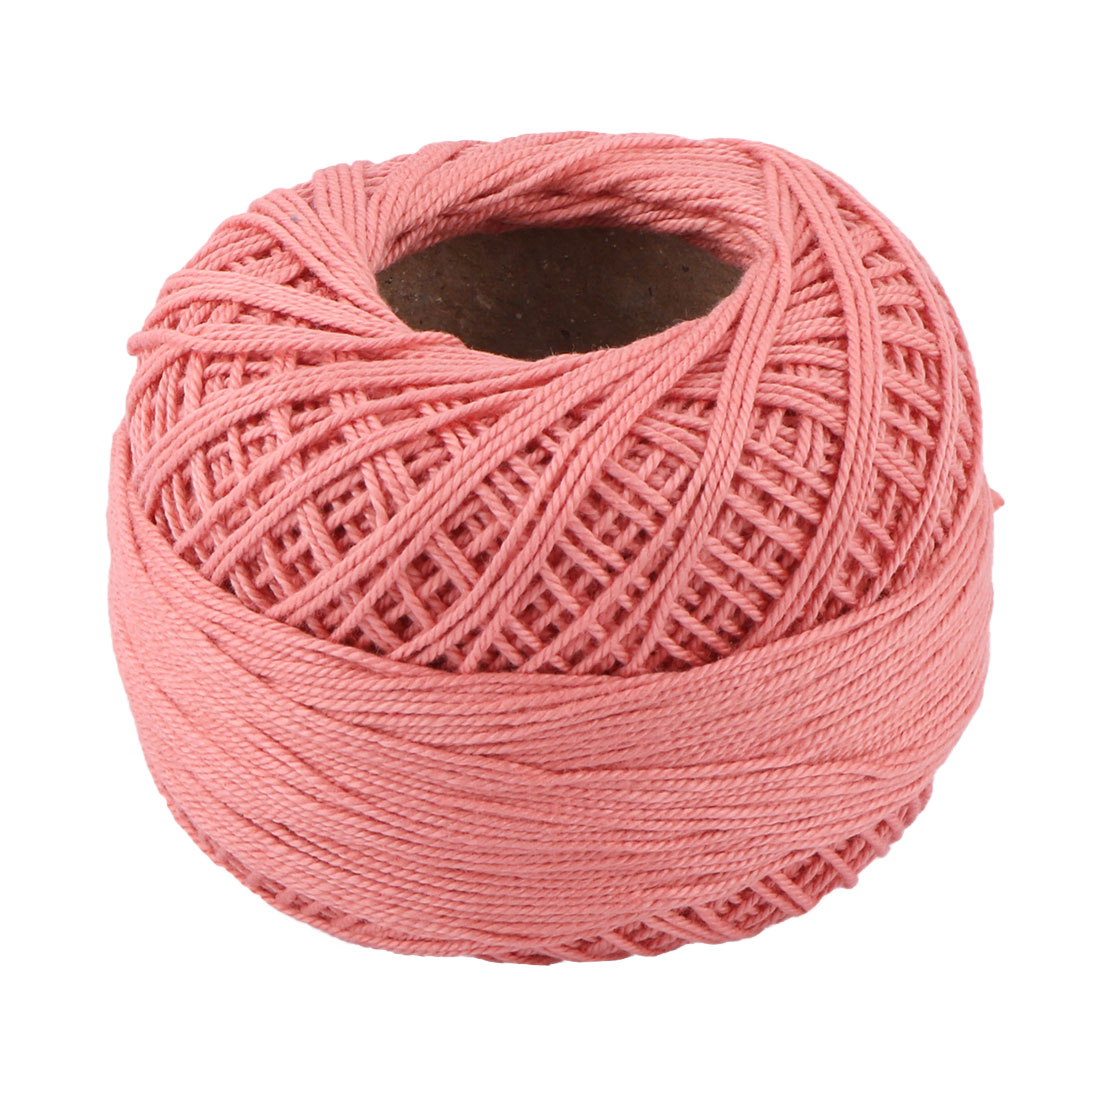 Family Hat Sewing Crochet Knitting Yarn String Thread Embroidery 60g Light Pink